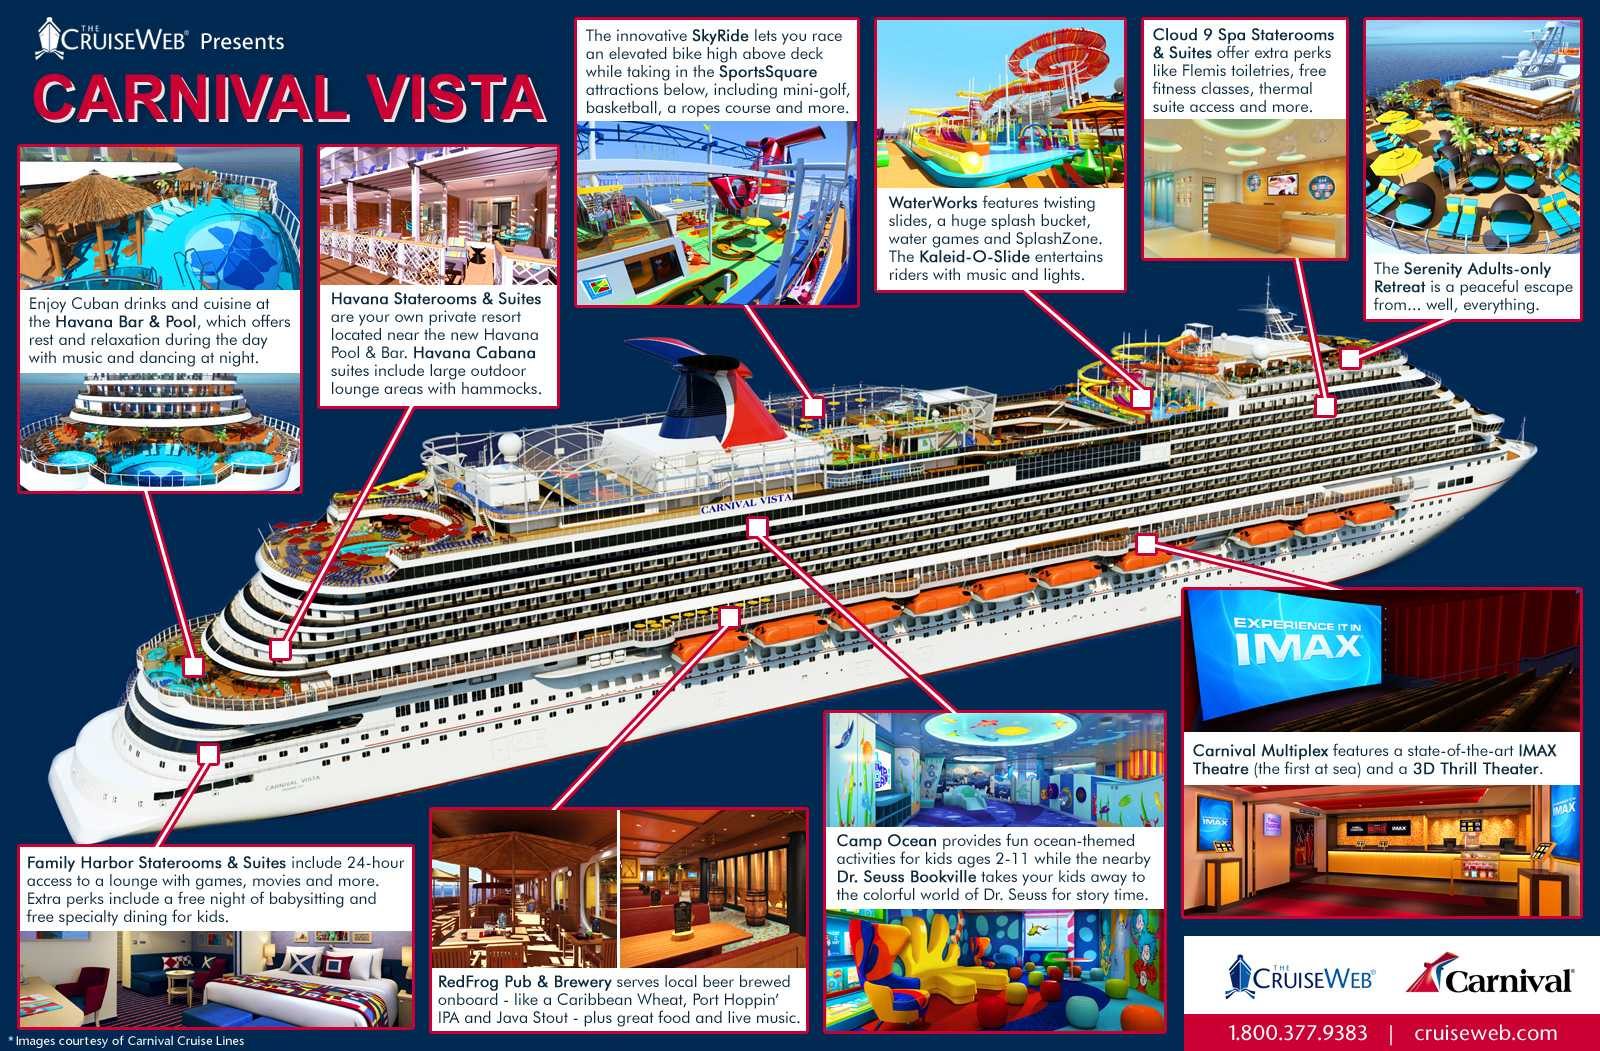 fbc372ff2ed Cruise Web Presents Carnival Vista Cruise Ship  INFOGRAPHIC  - Viral ...